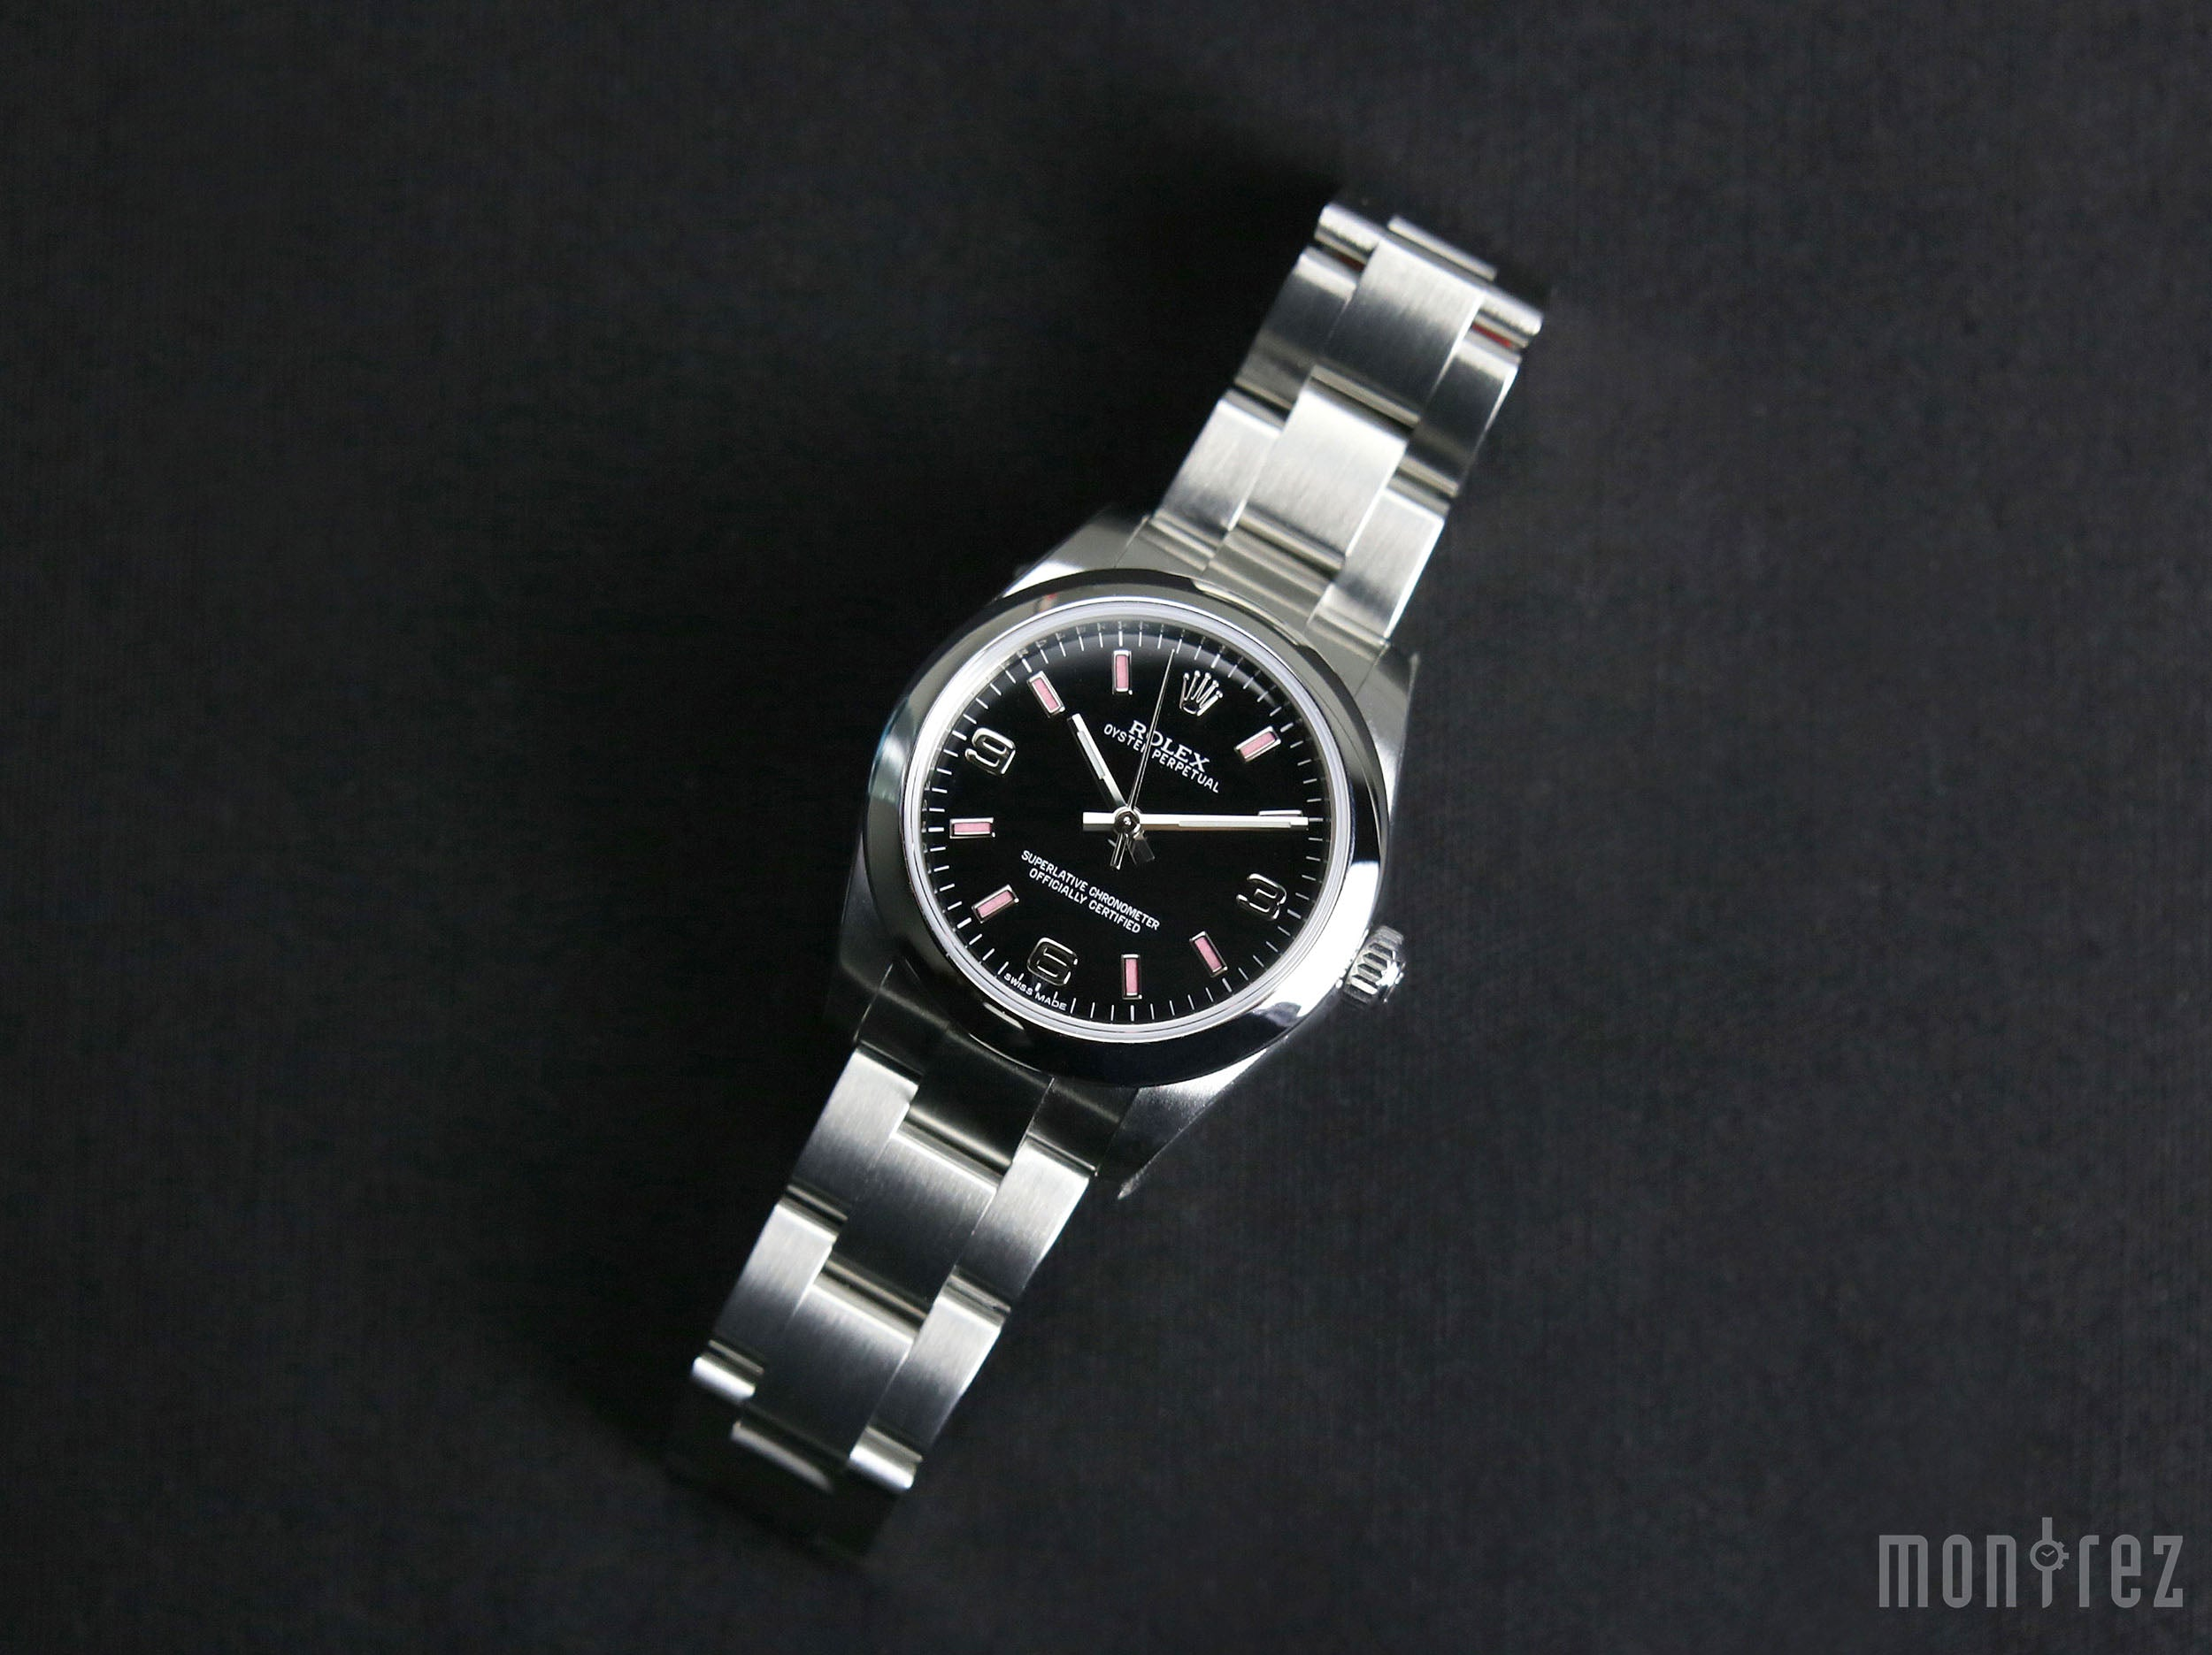 Rolex Oyster Perpetual 31mm 177200 Black Dial 369 (Out of Production)